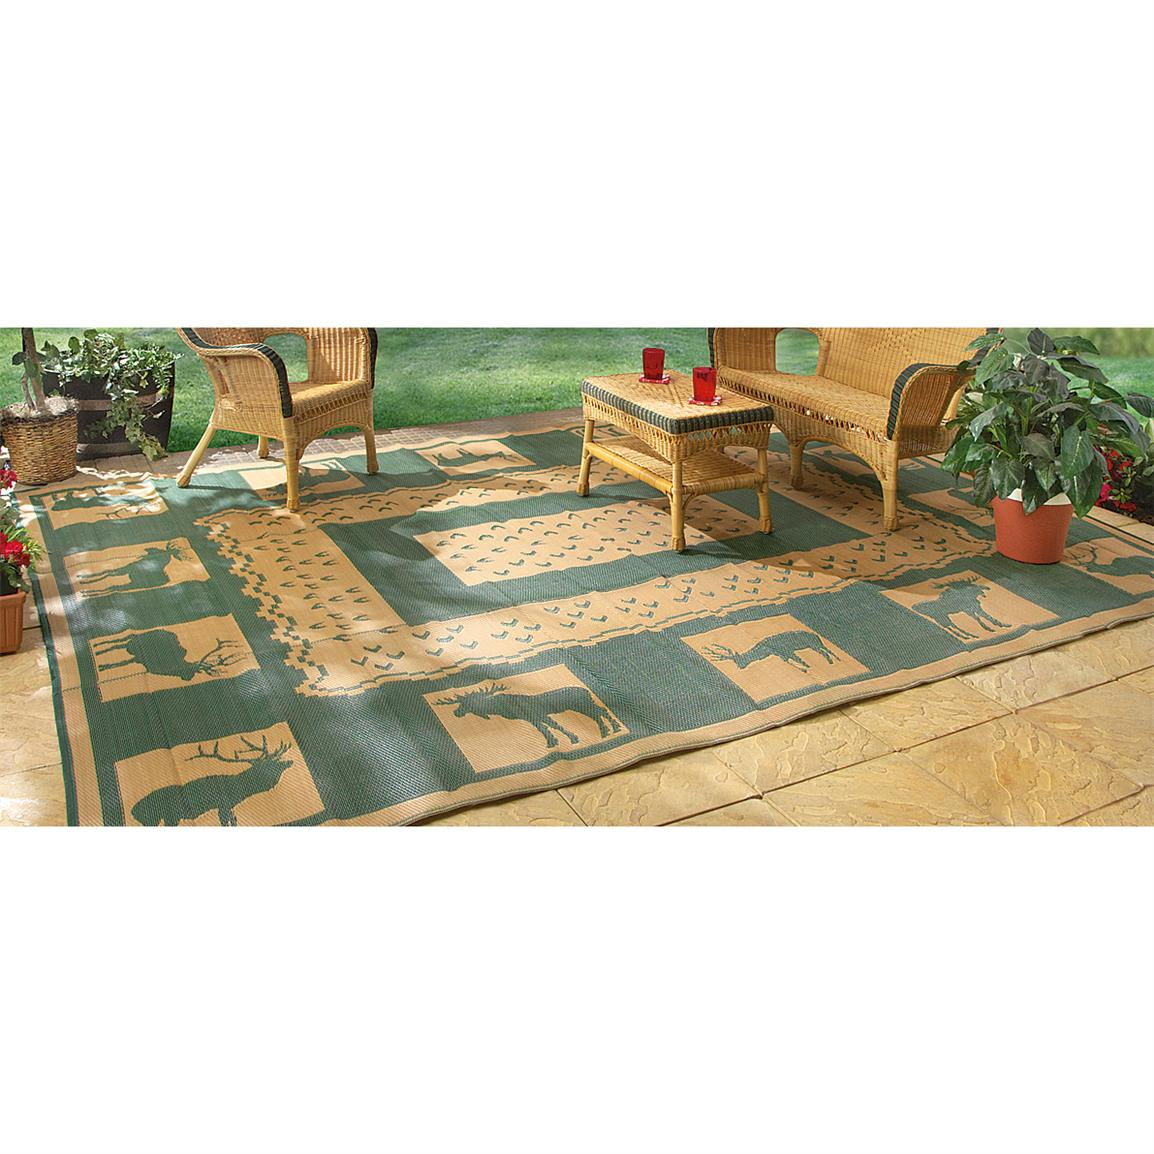 Guide Gear Reversible Outdoor Rug, 6 foot x 9 foot